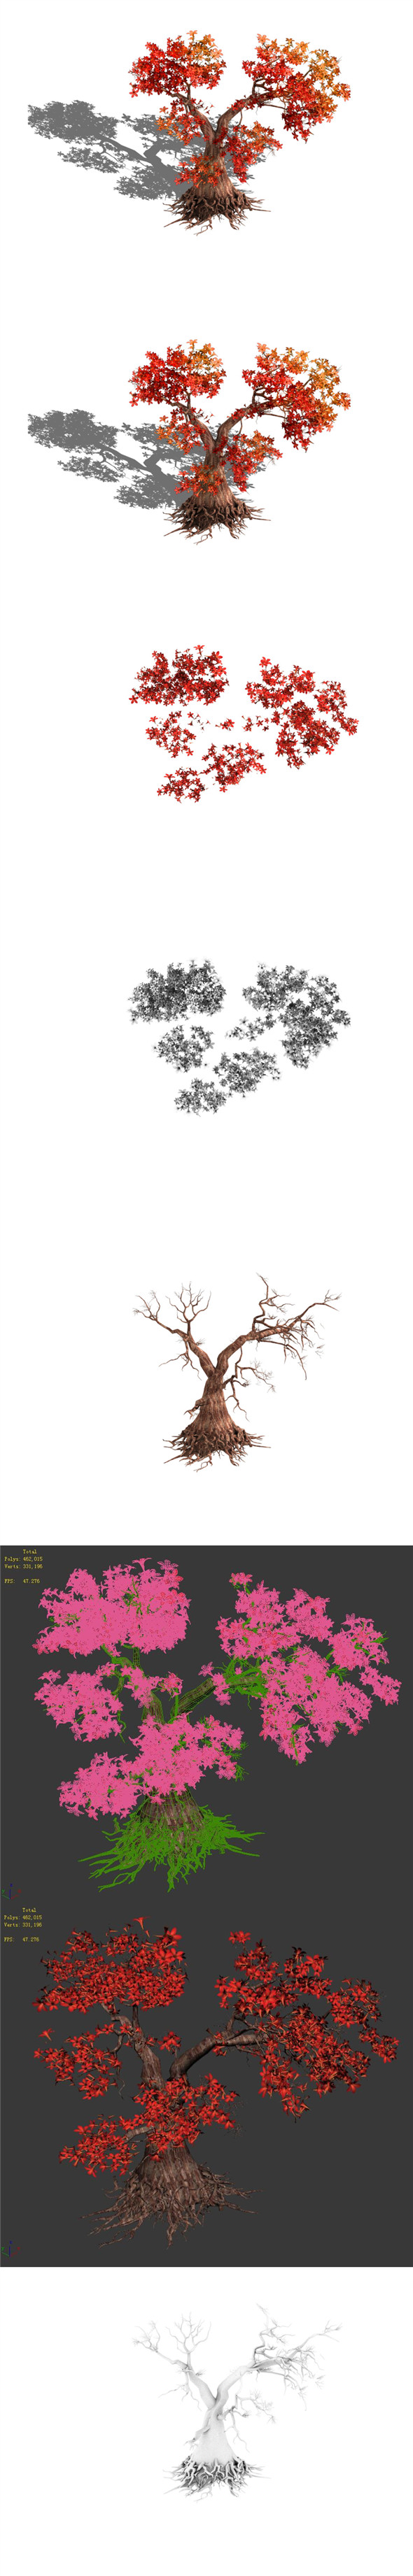 Forest - Maple Tree 19 - 3DOcean Item for Sale